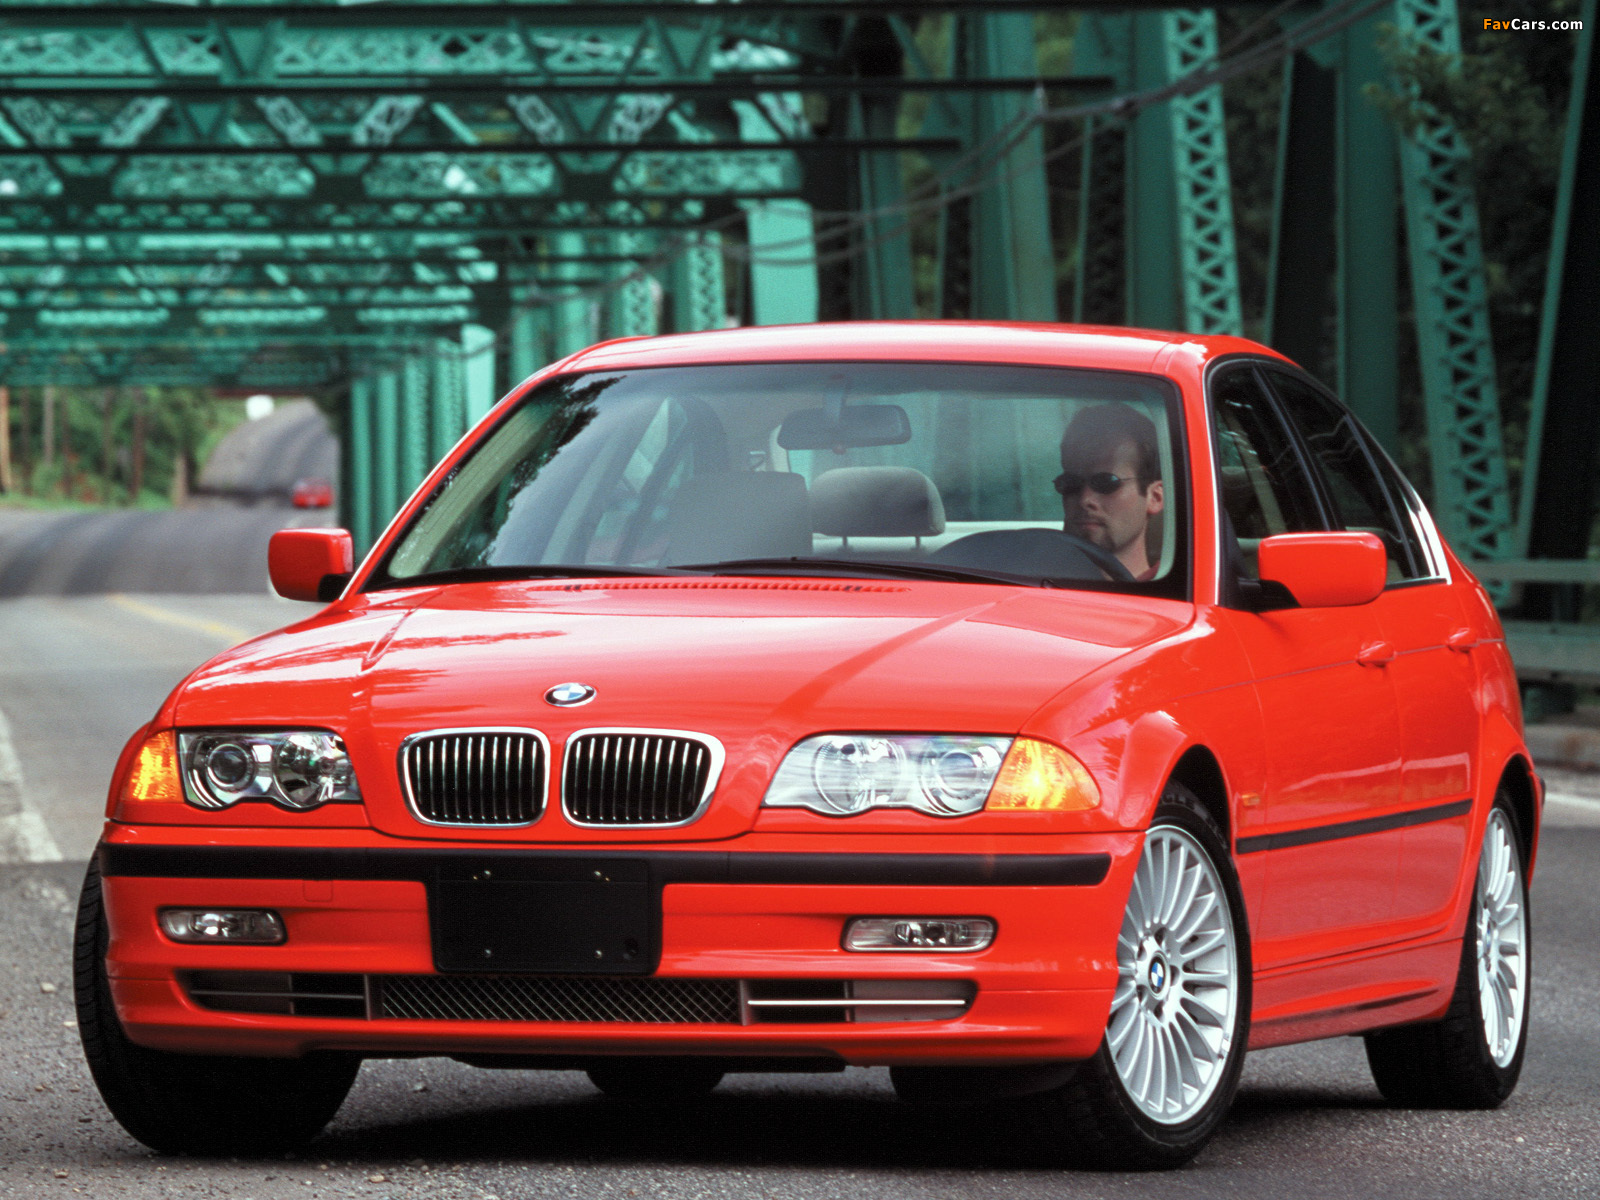 Bmw 330i Sedan Us Spec E46 2000 01 Pictures 1600 X